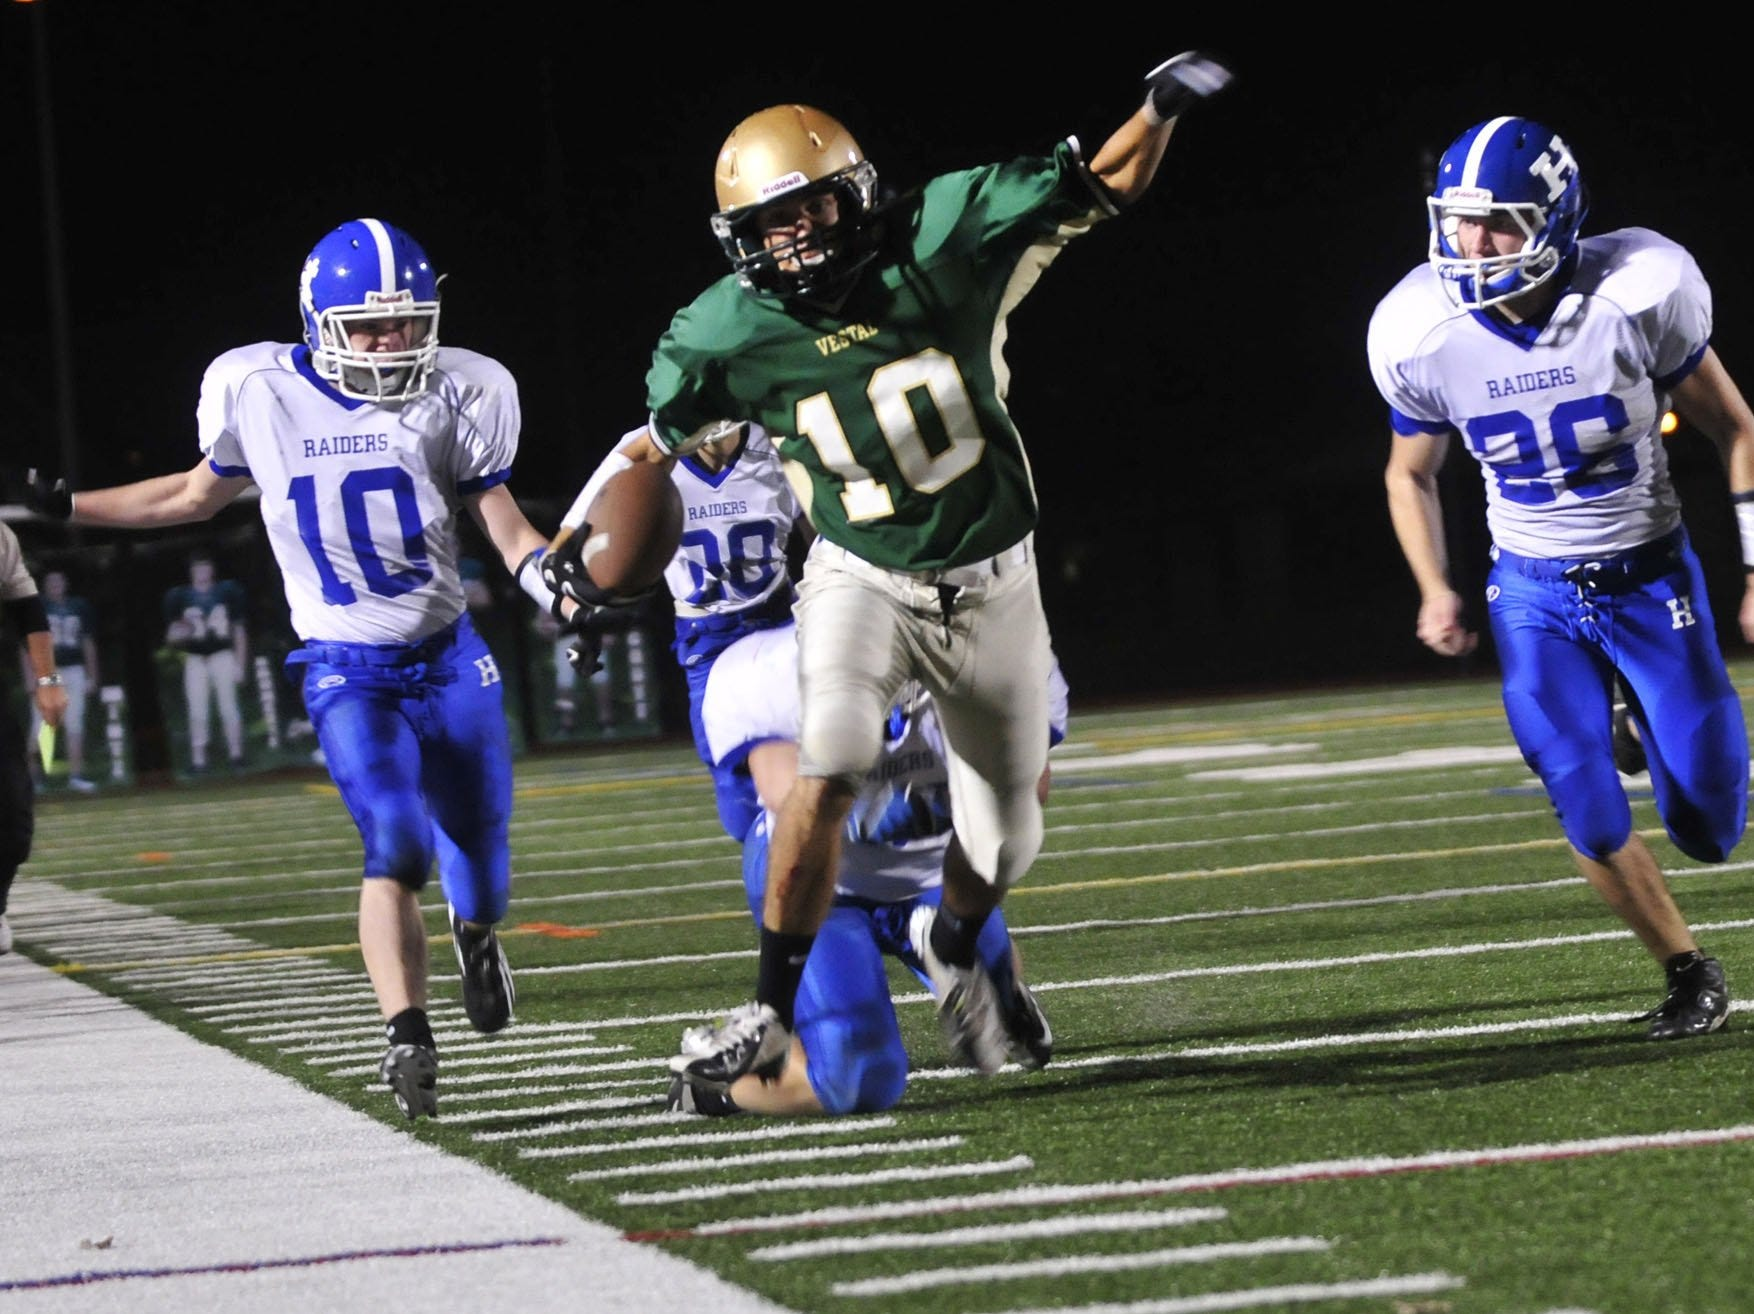 In 2012, Vestal's Mike Chewens runs for a 49-yard touchdown reception during the Section 4 Class A semifinal at Dick Hoover Stadium.